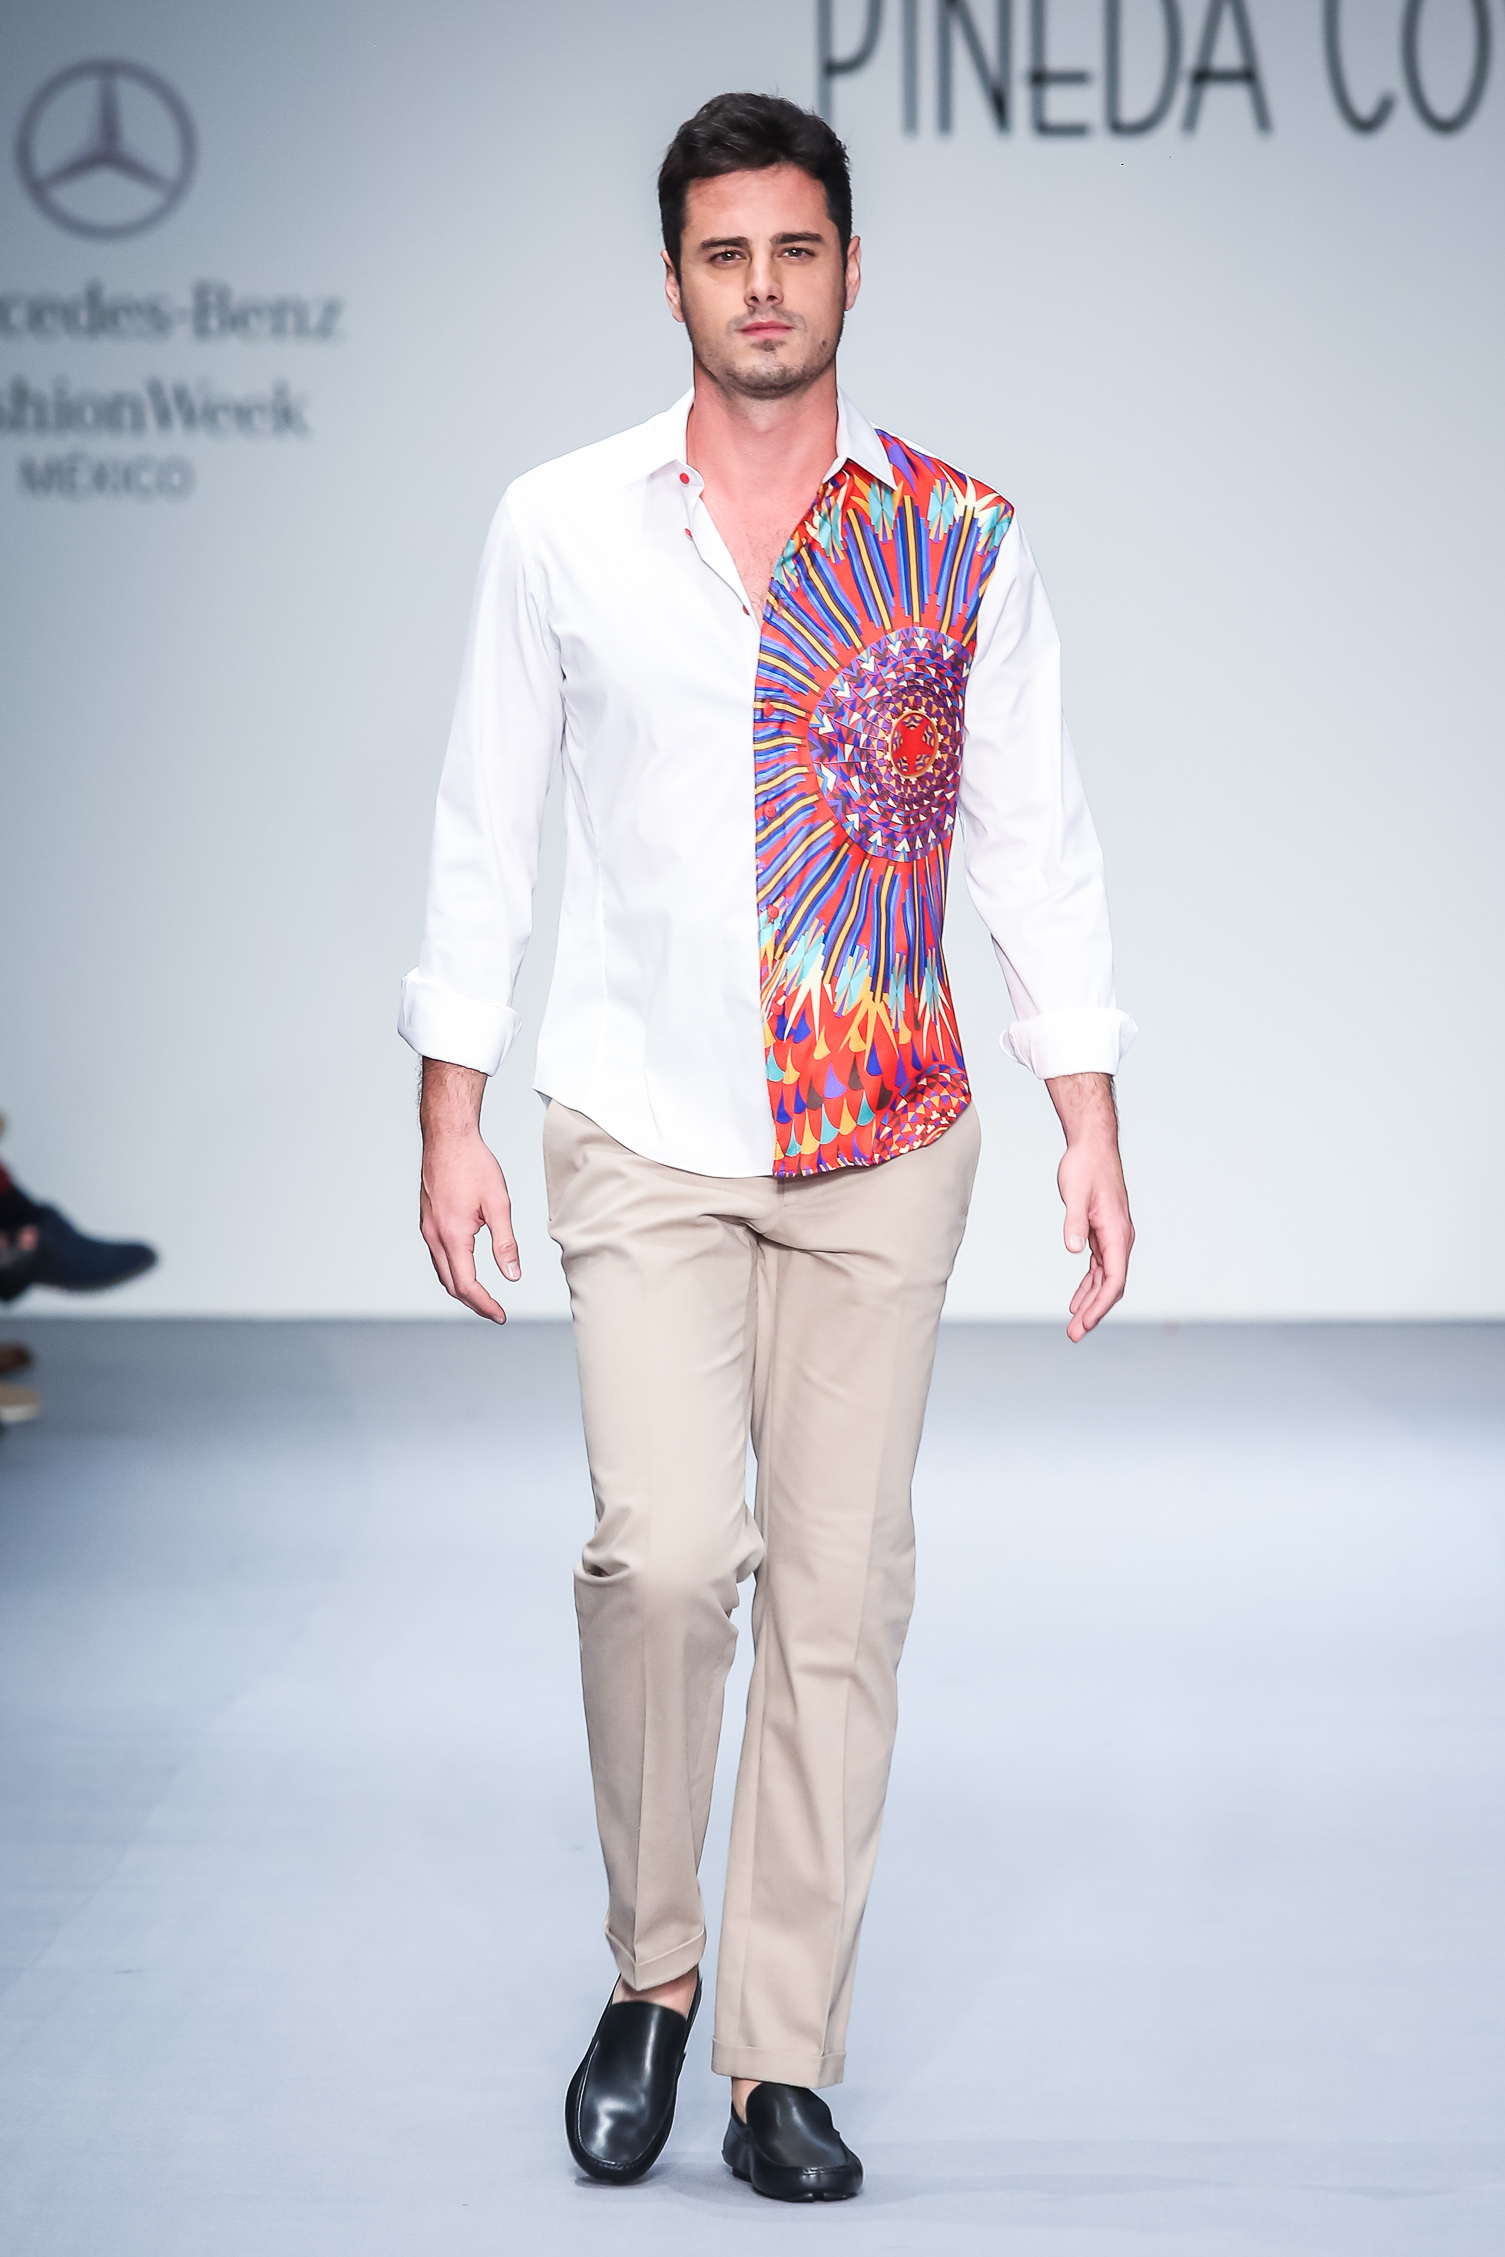 Pineda Covalin S S16 Mexico City Fashionably Male